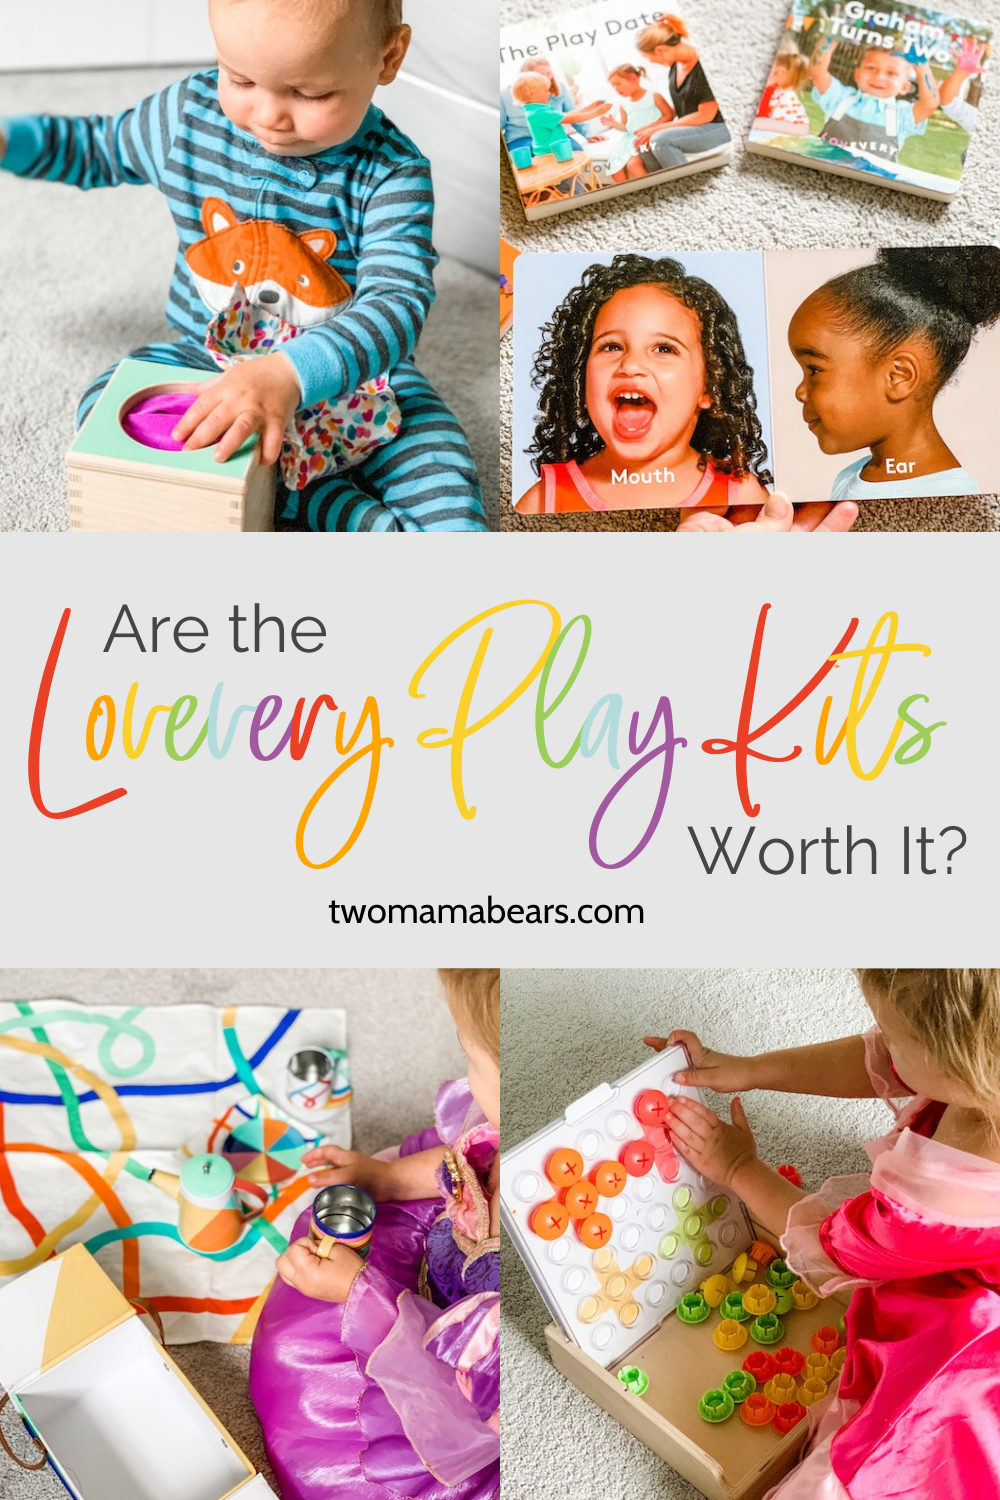 Are the lovevery play kits worth it